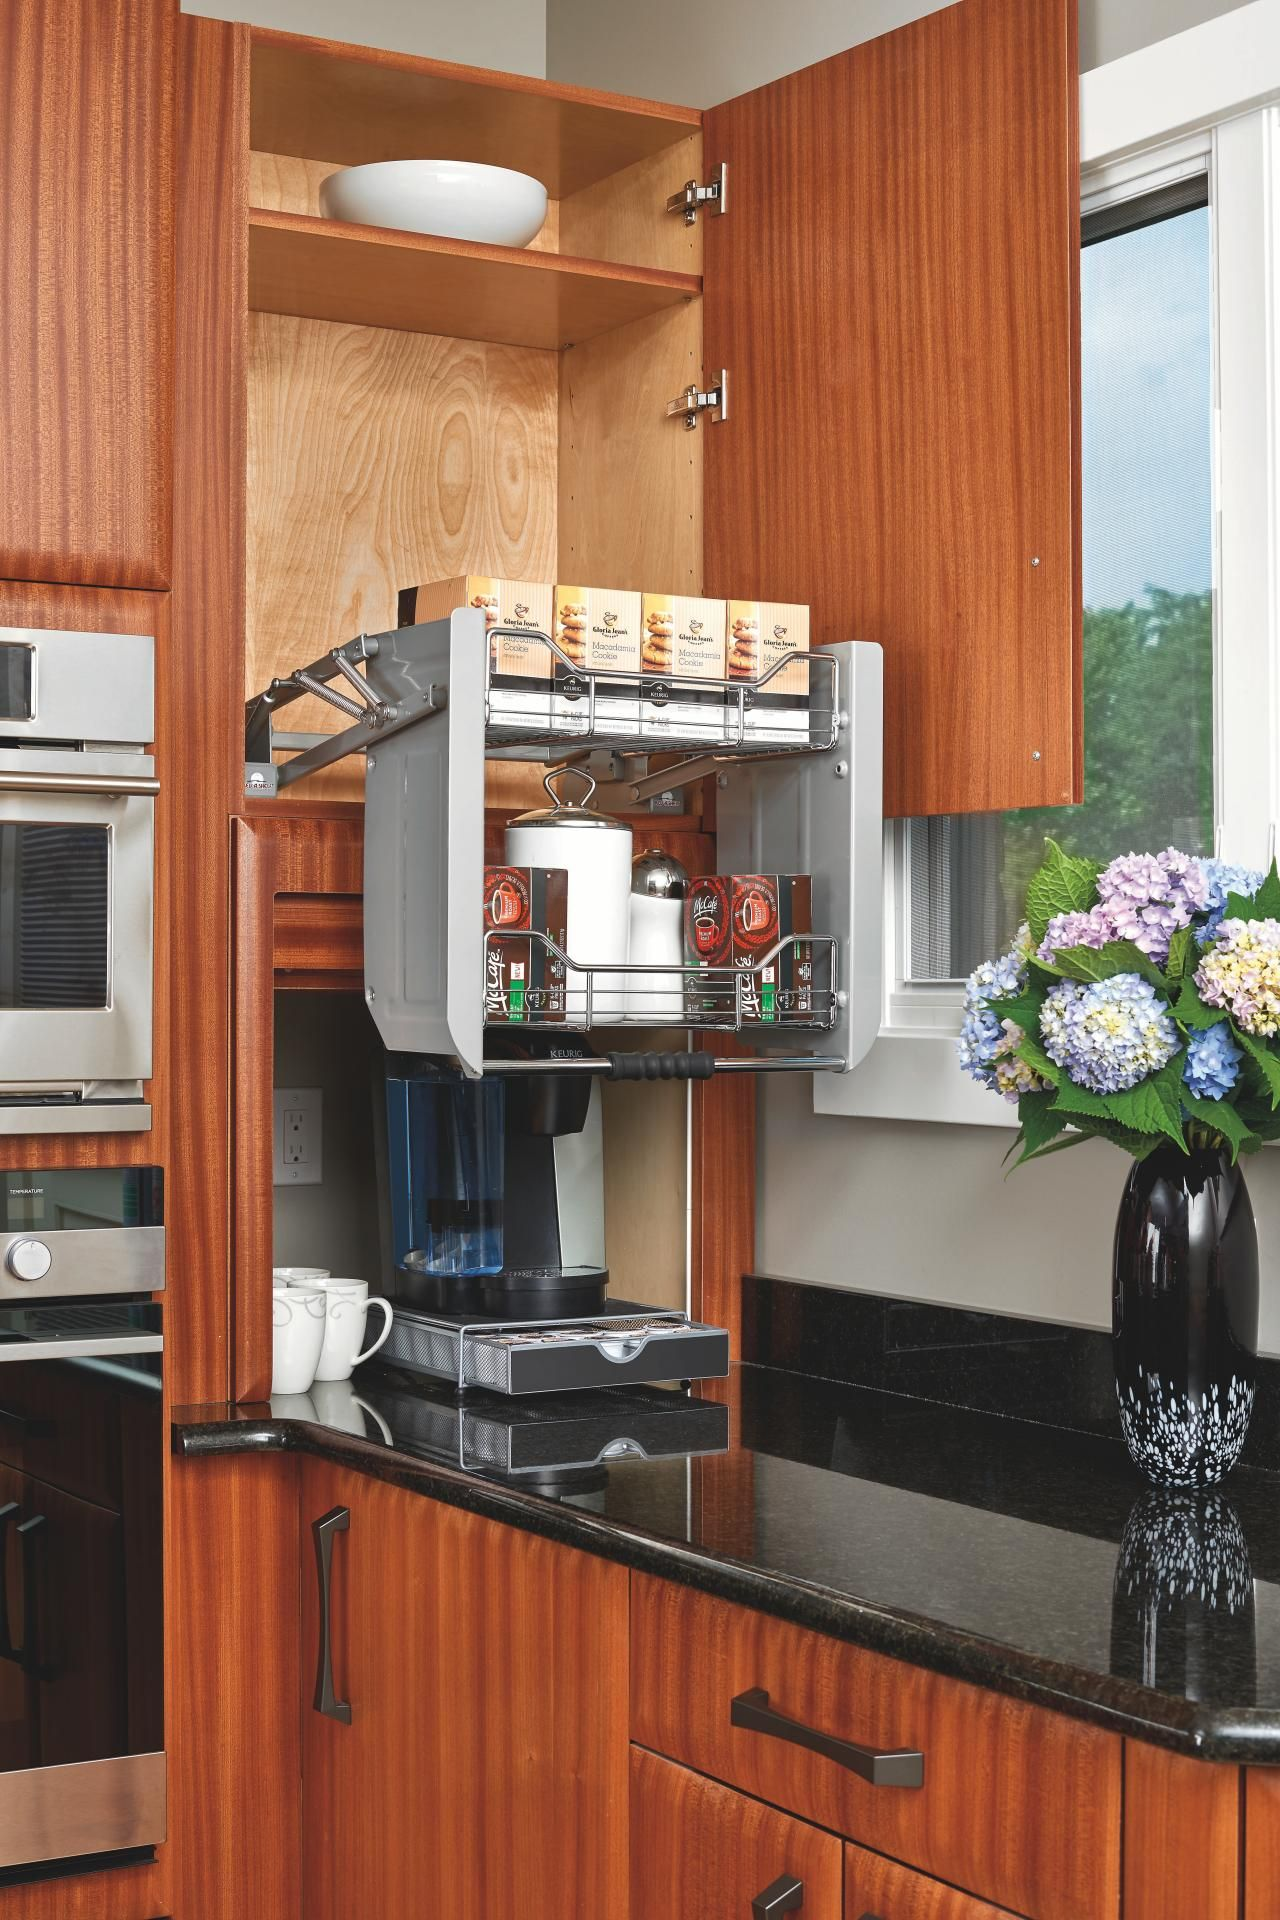 Pull Down Shelf In Kitchen Cabinet Upper Kitchen Cabinets Interior Design Kitchen Kitchen Trends